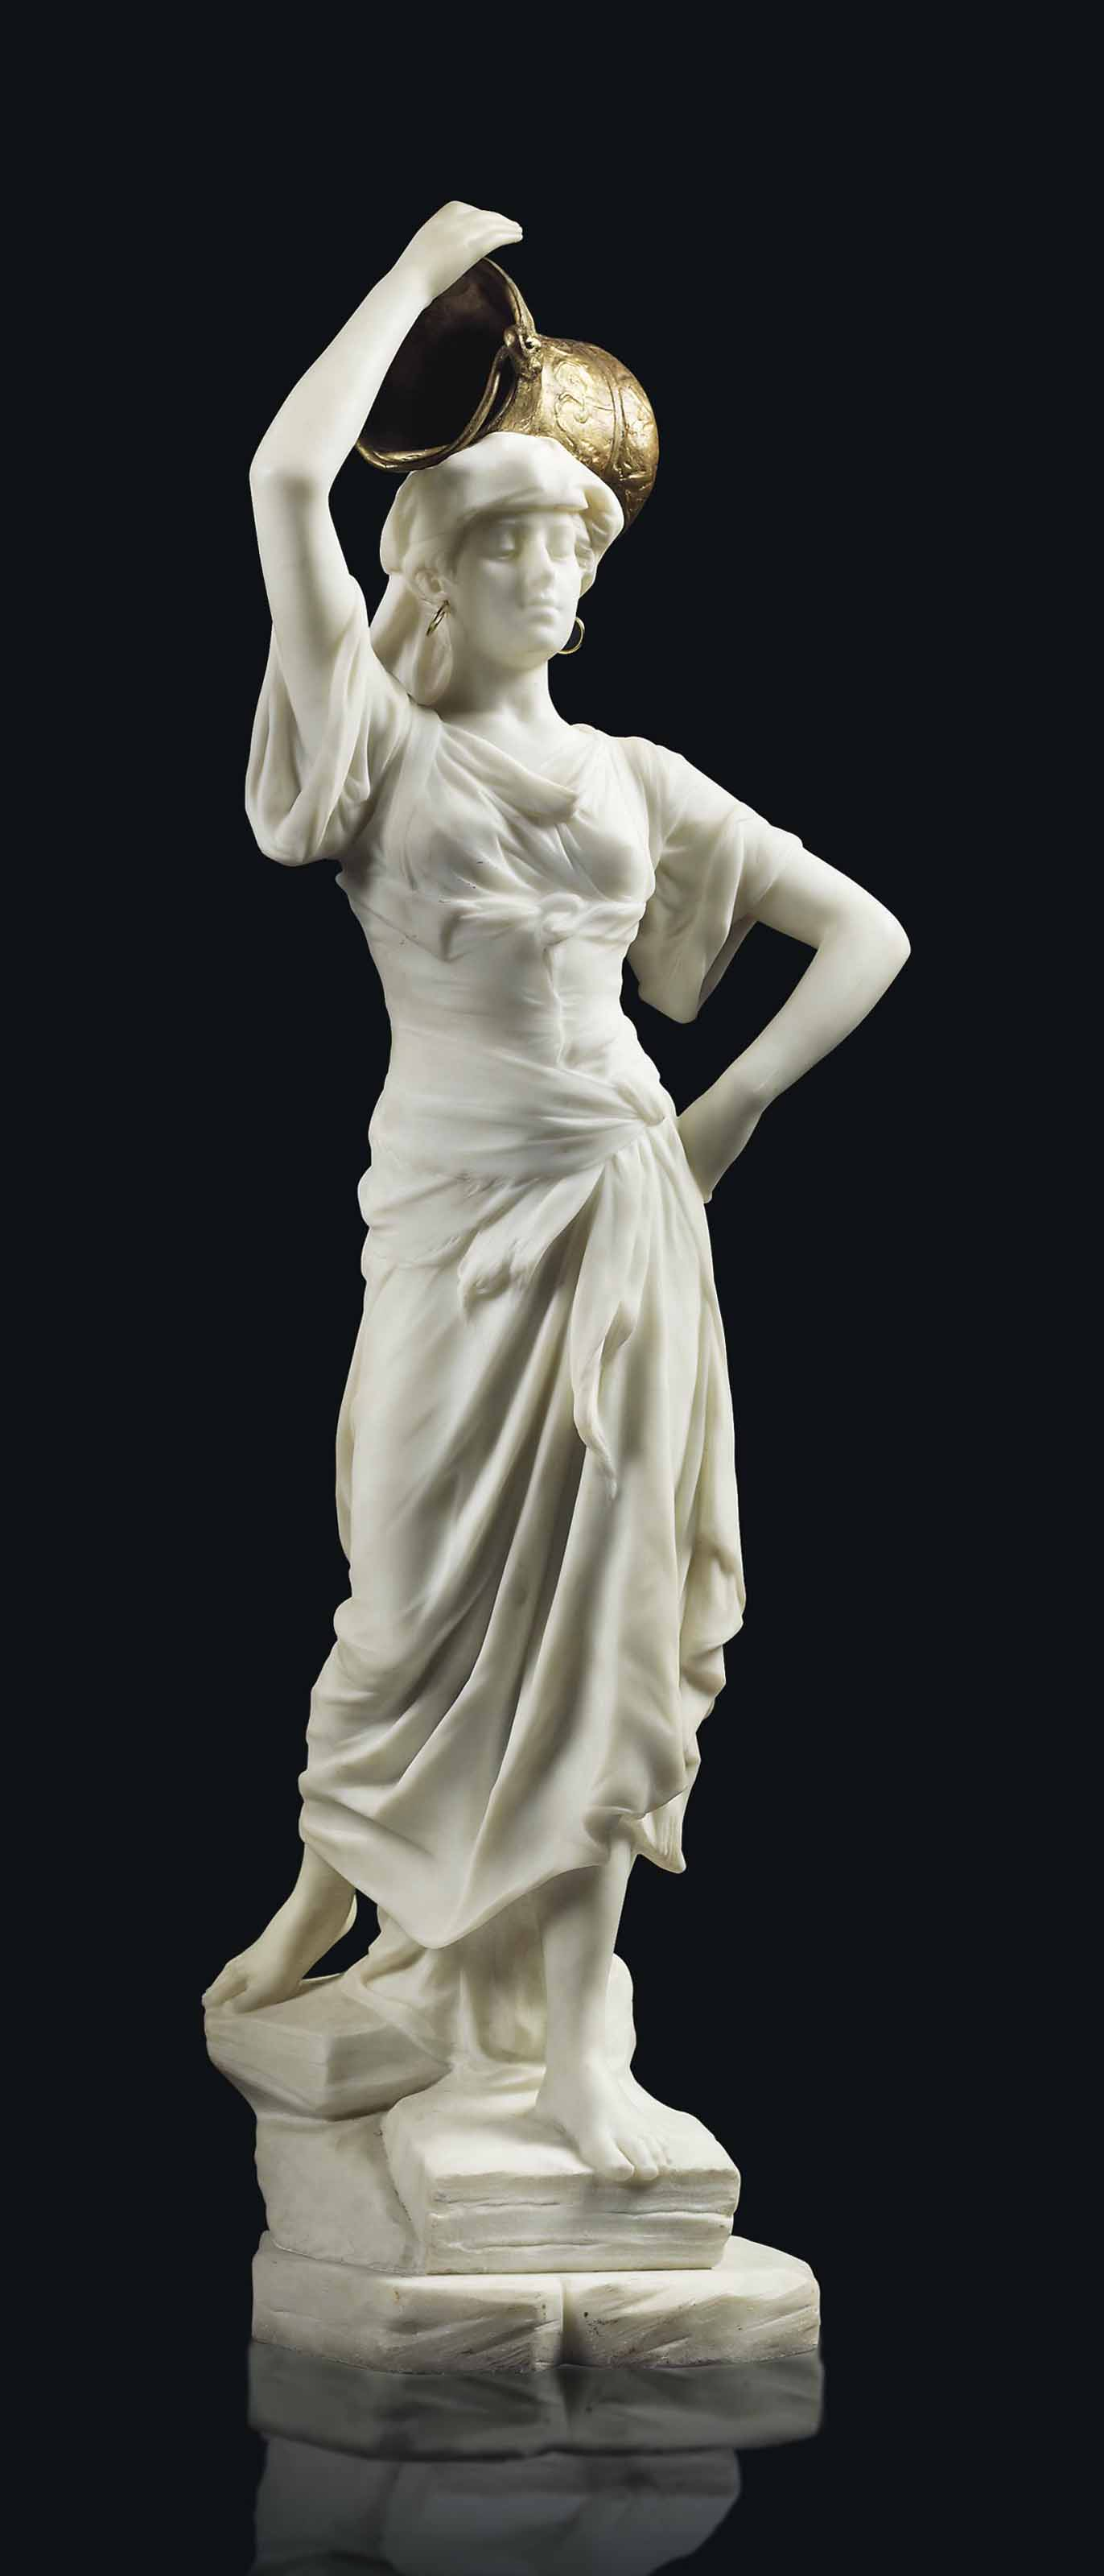 Femme portant une vasque (Woman supporting a basin)